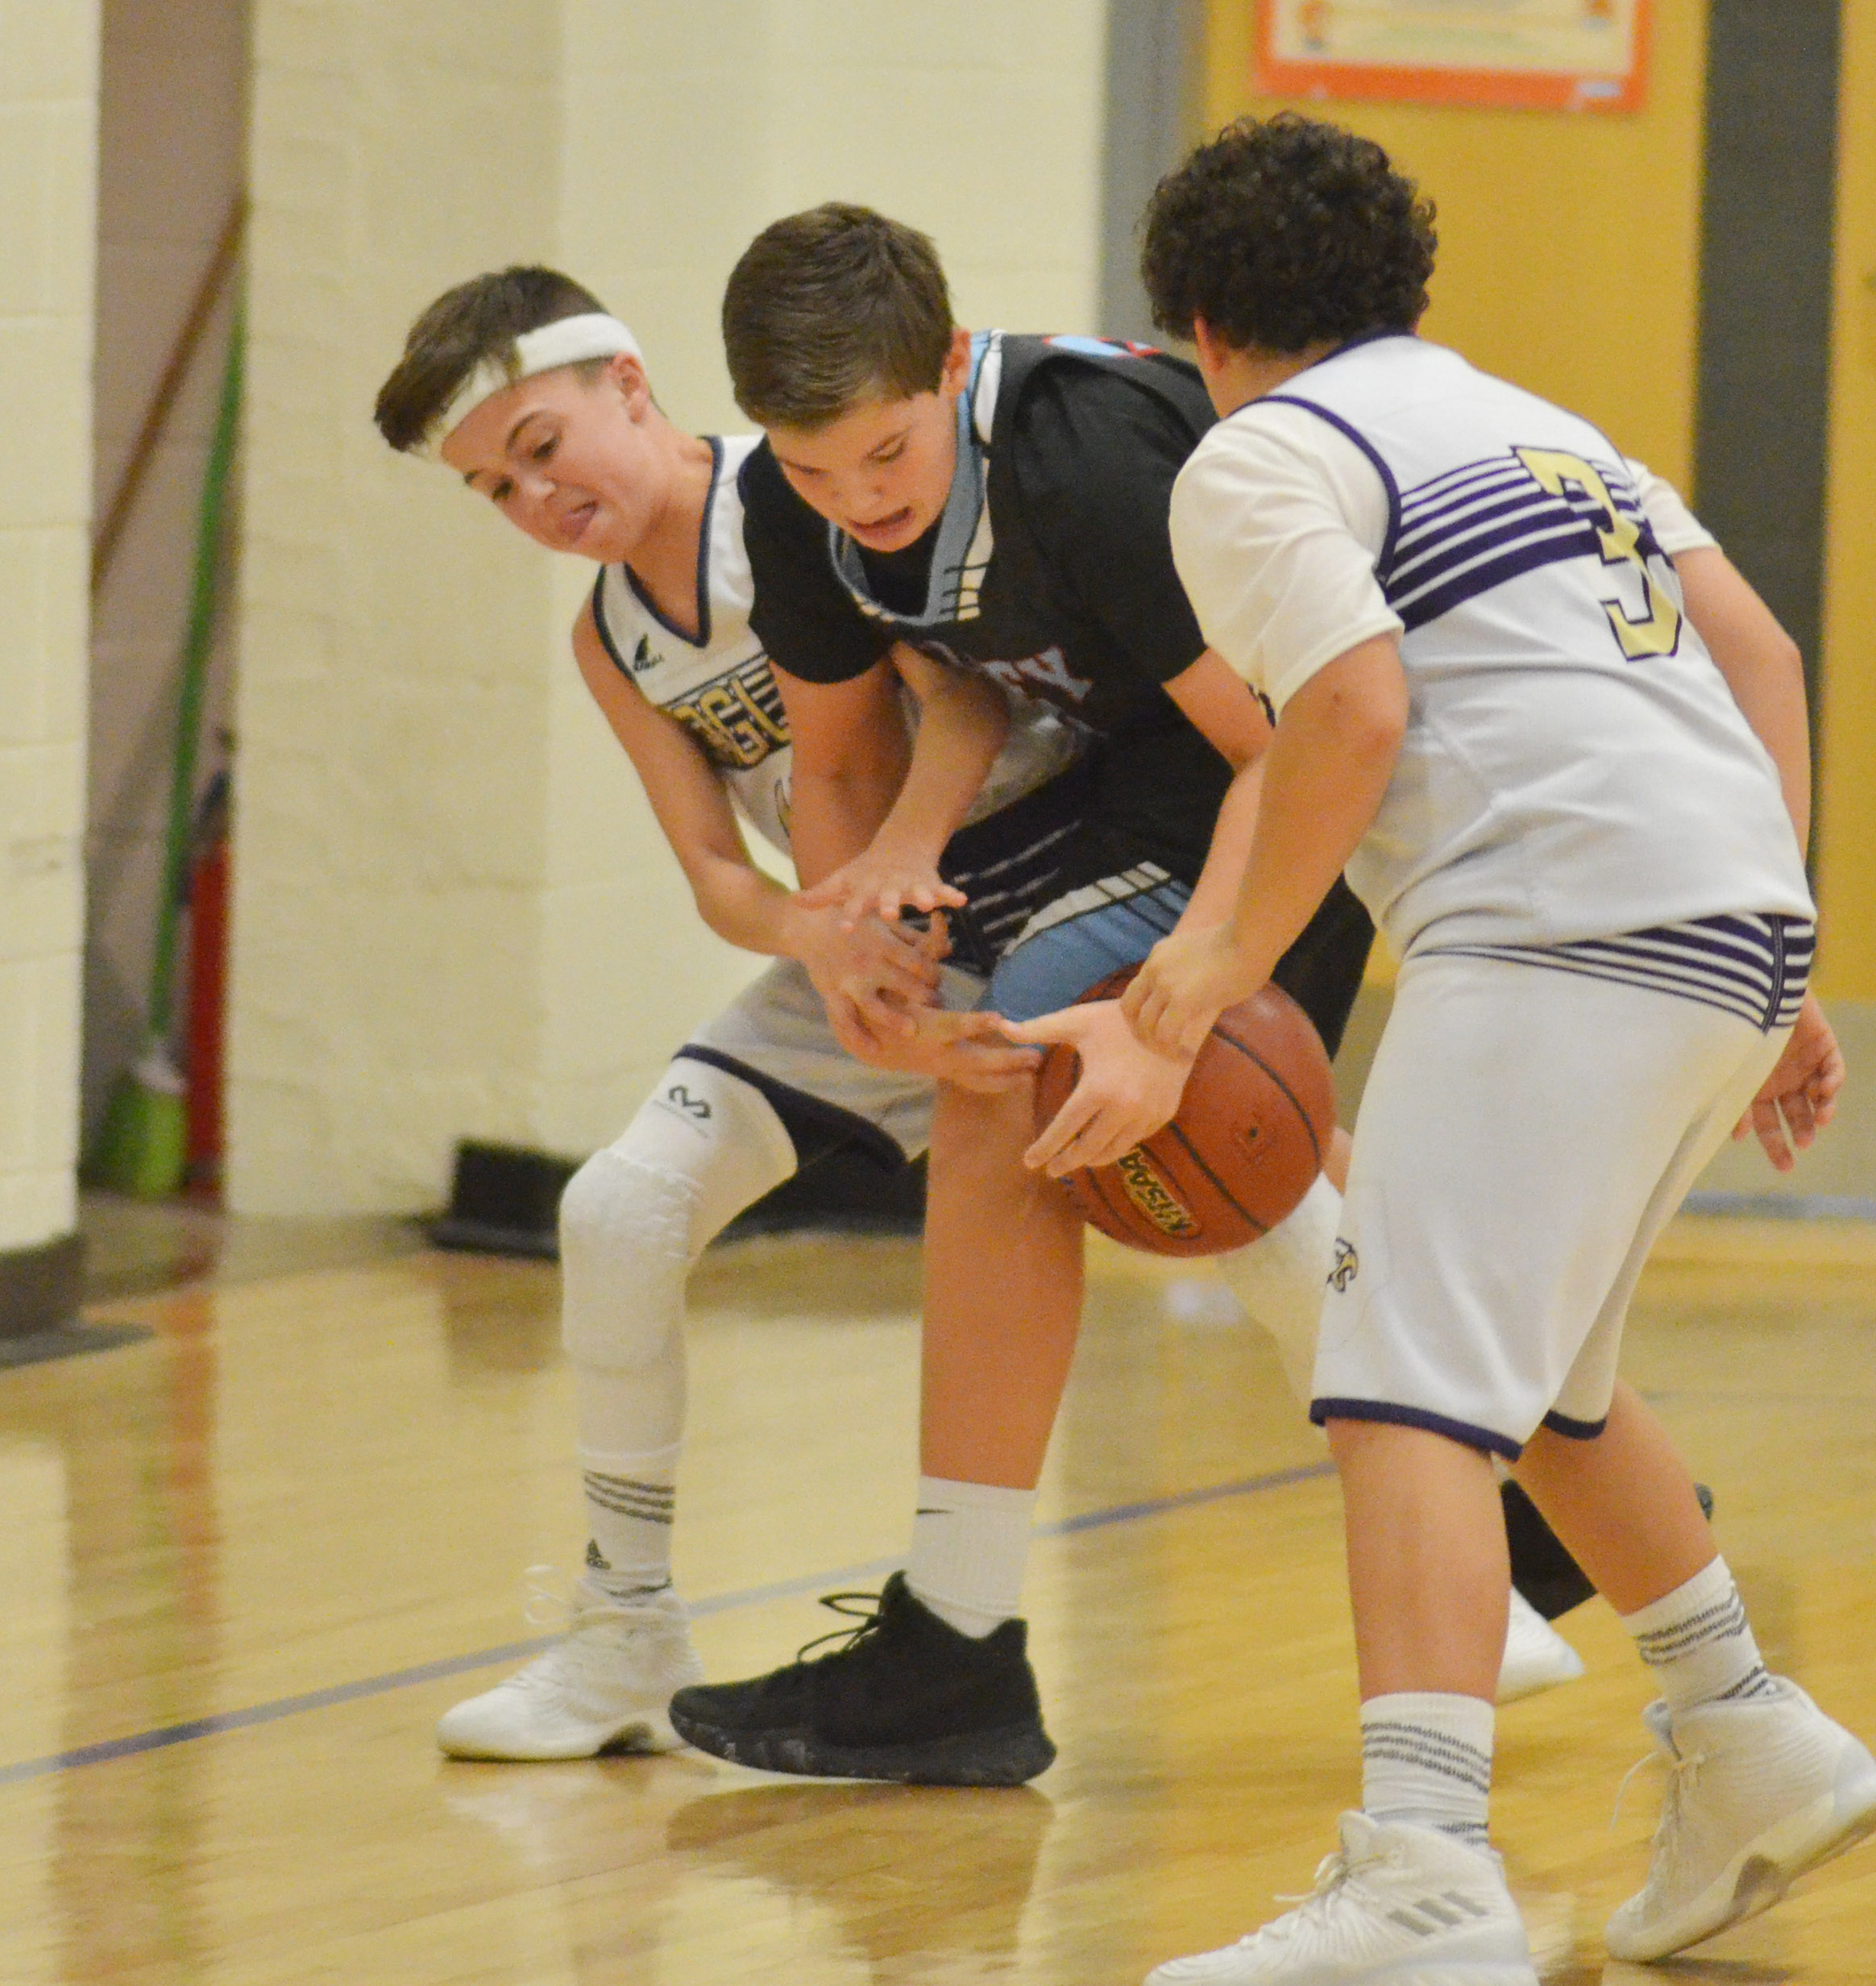 CMS seventh-graders Chase Hord, at left, and Kaydon Taylor fight for the ball.